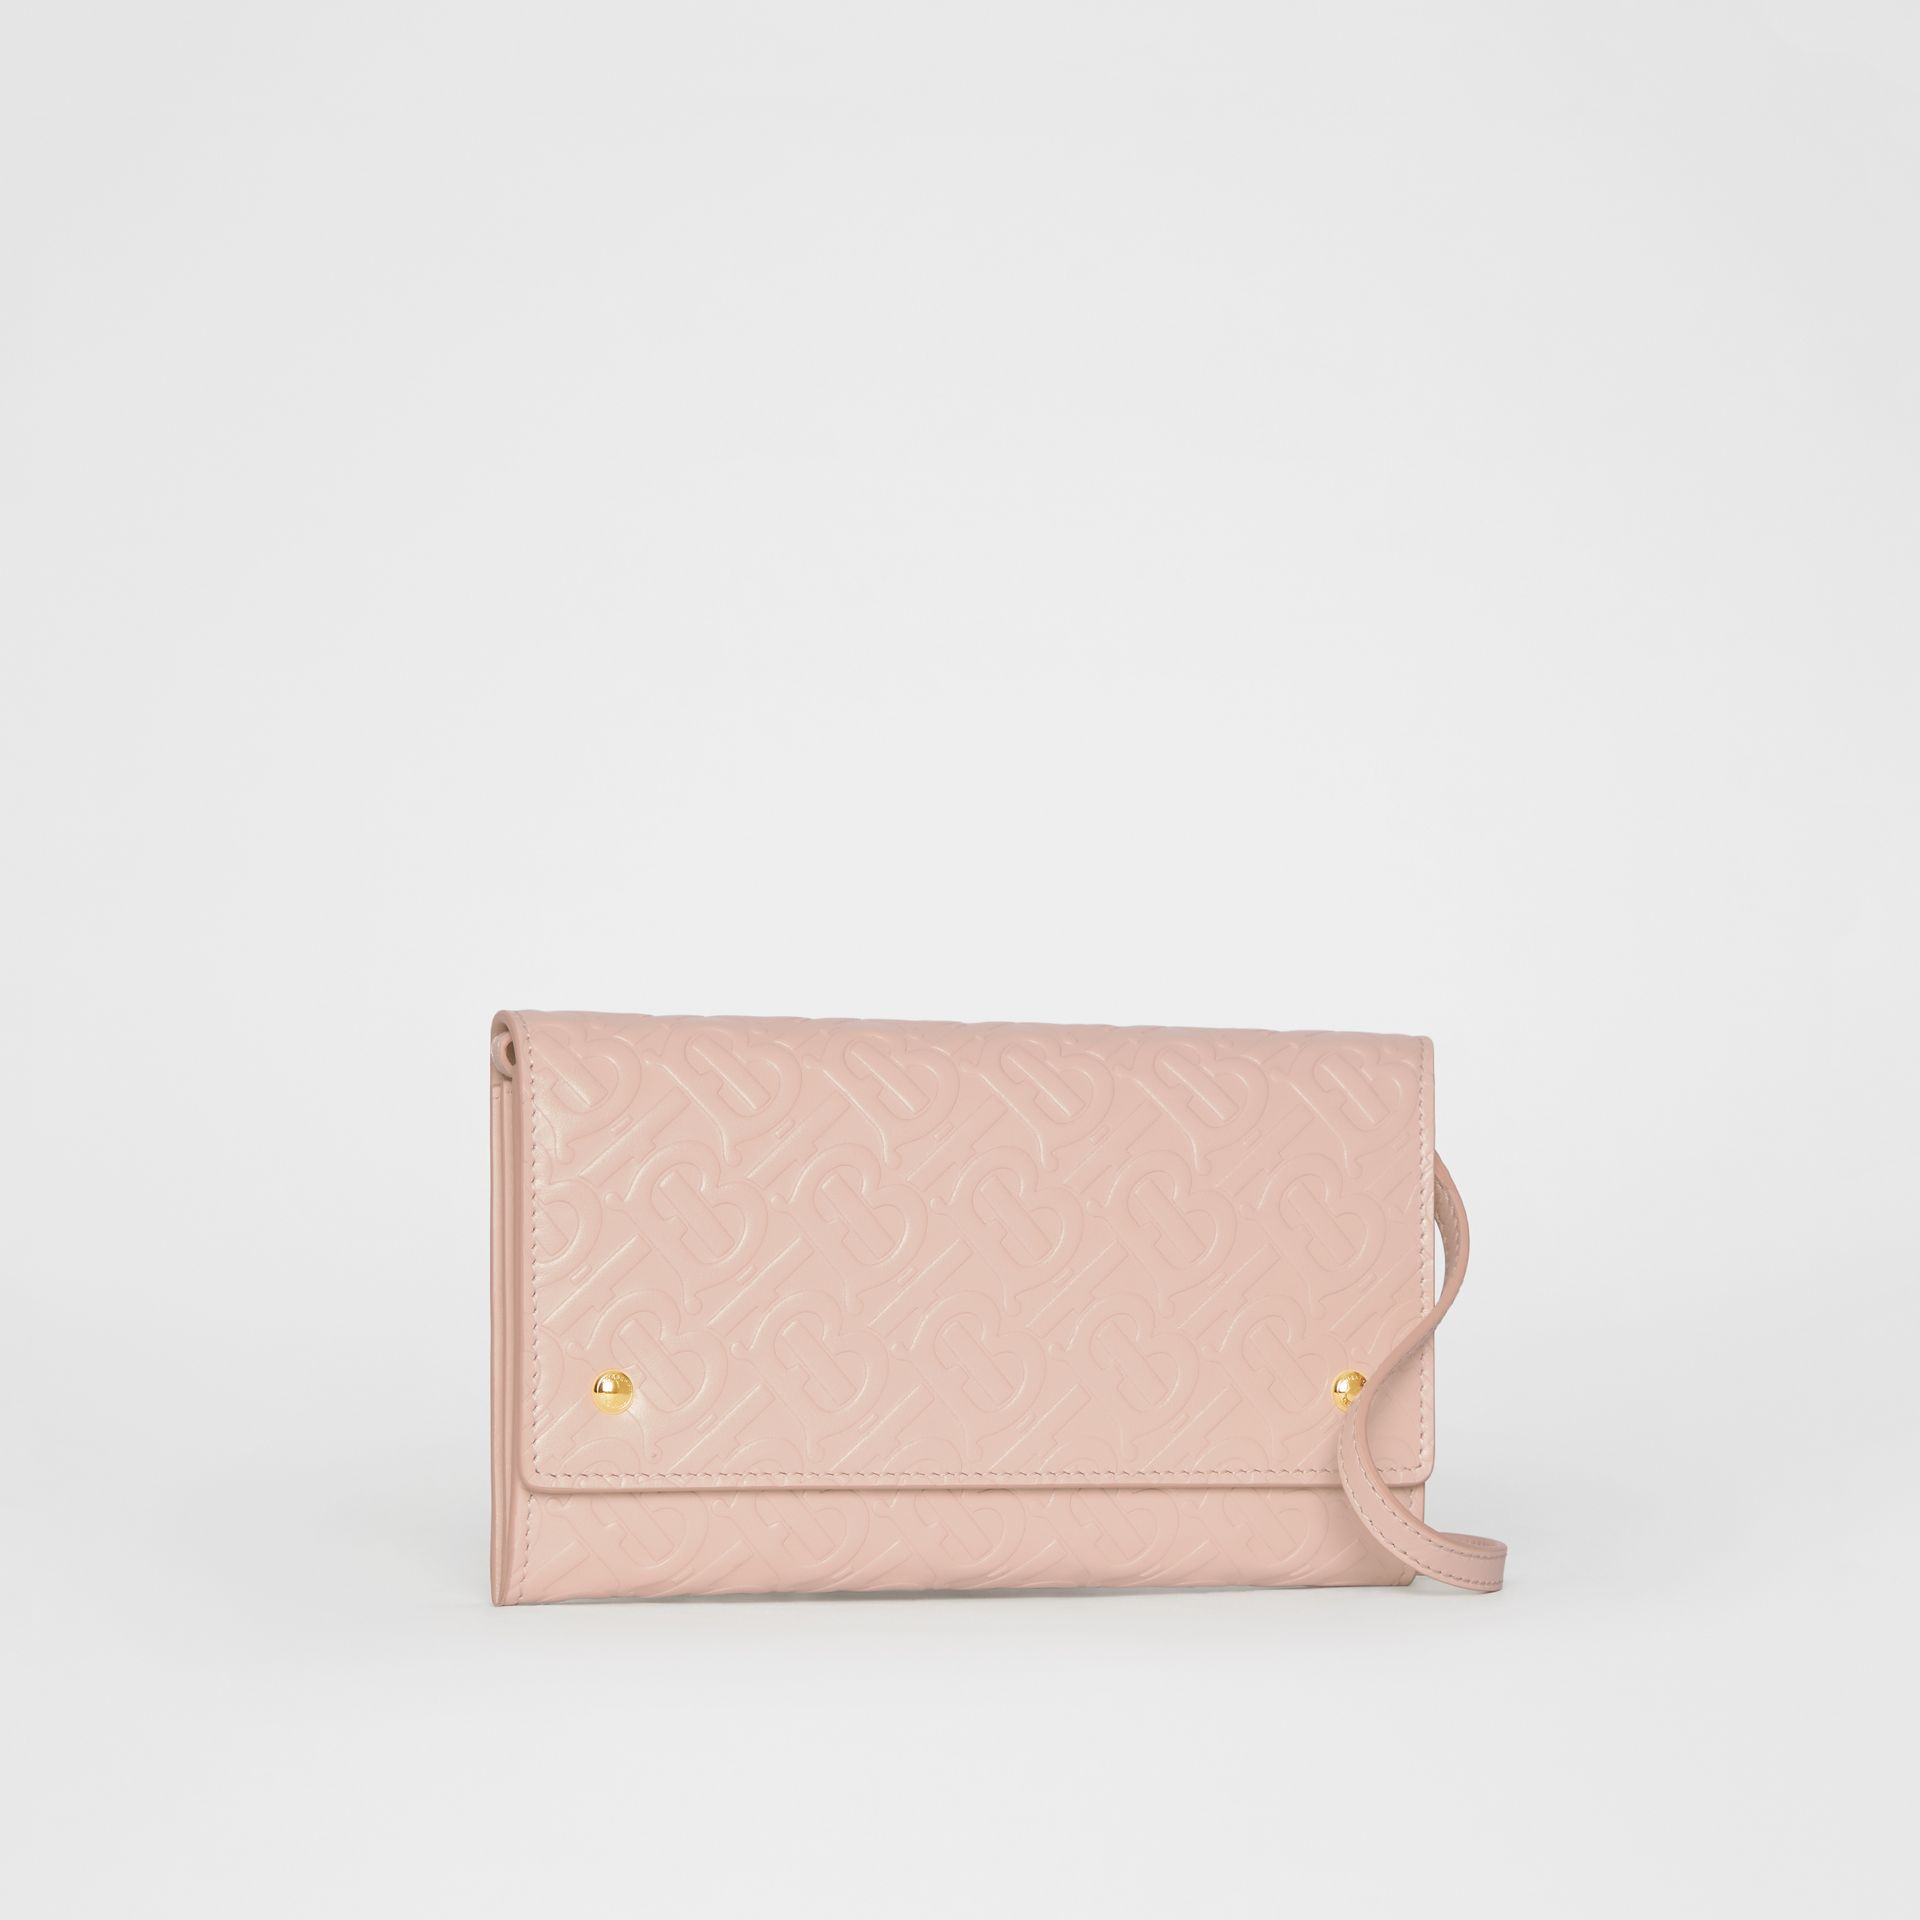 Portefeuille en cuir Monogram et sangle amovible (Beige Rose) - Femme | Burberry - photo de la galerie 7